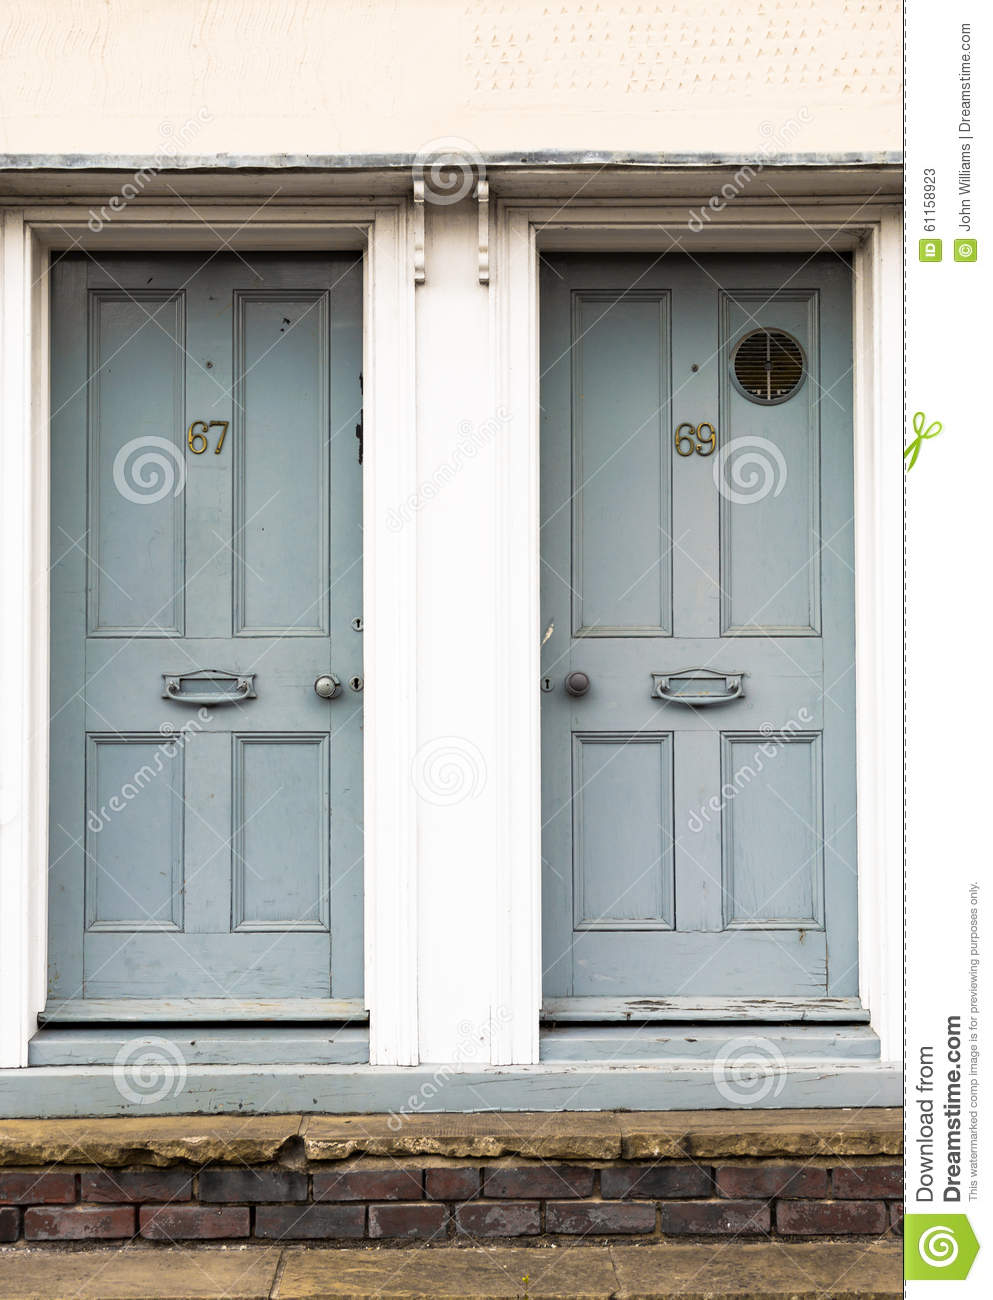 Residential front doors wood the image for Residential front doors